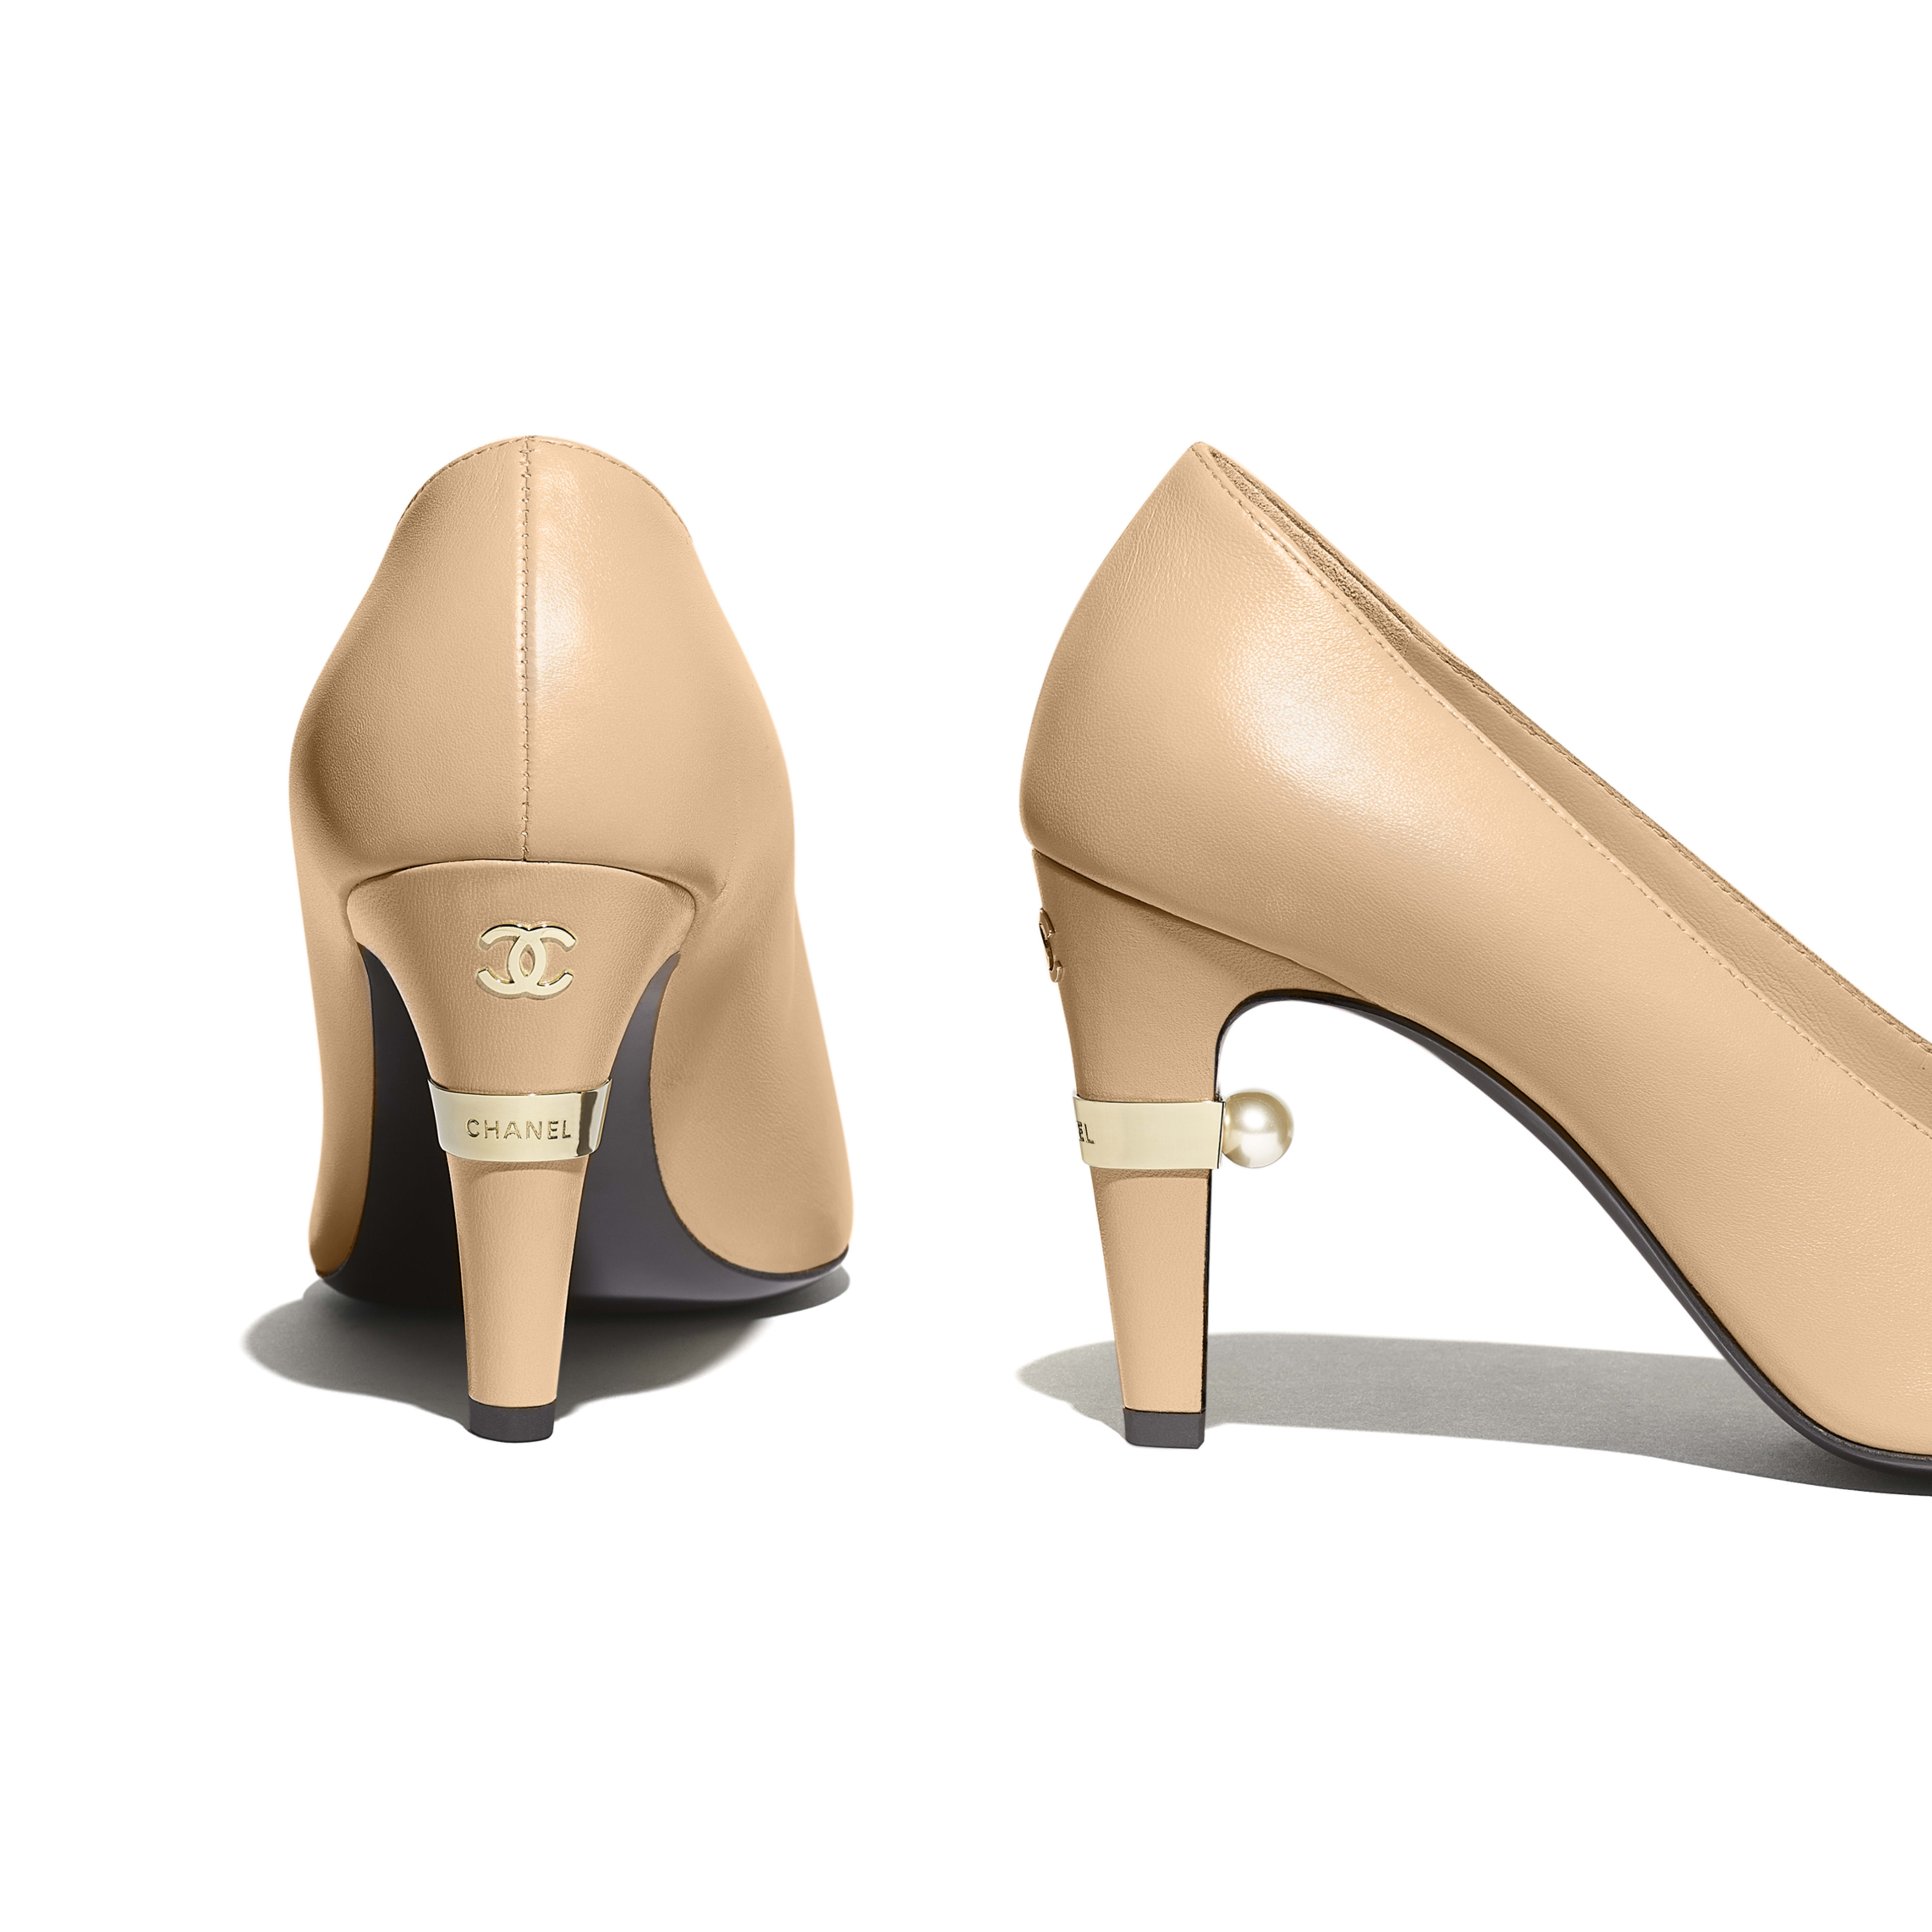 Pumps - Beige & Black - Lambskin - Extra view - see full sized version